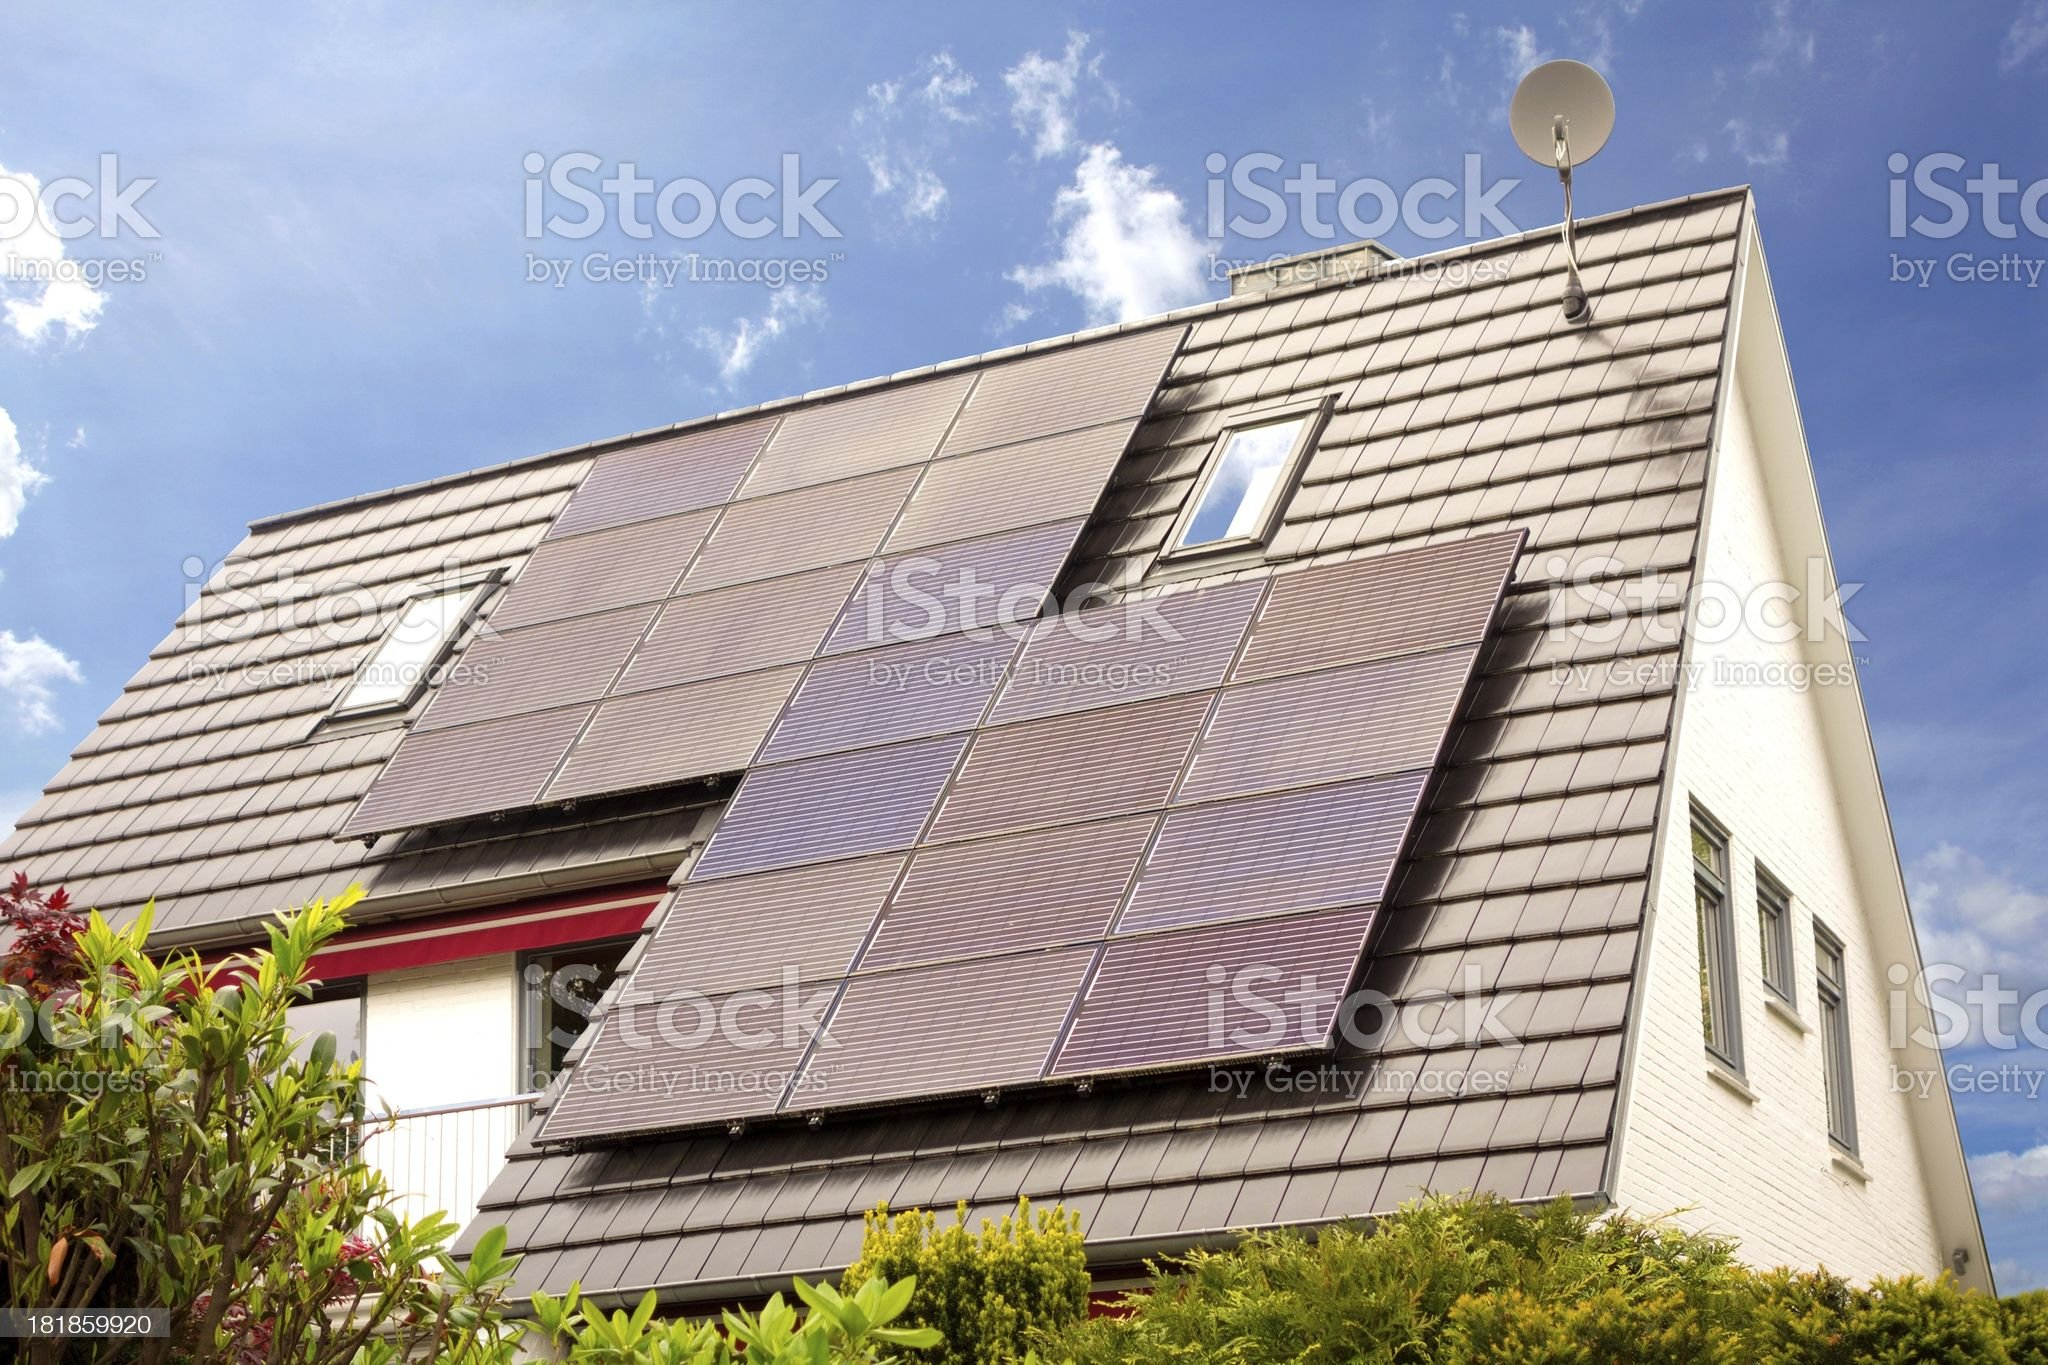 large solar panel on a rooftop royalty-free stock photo